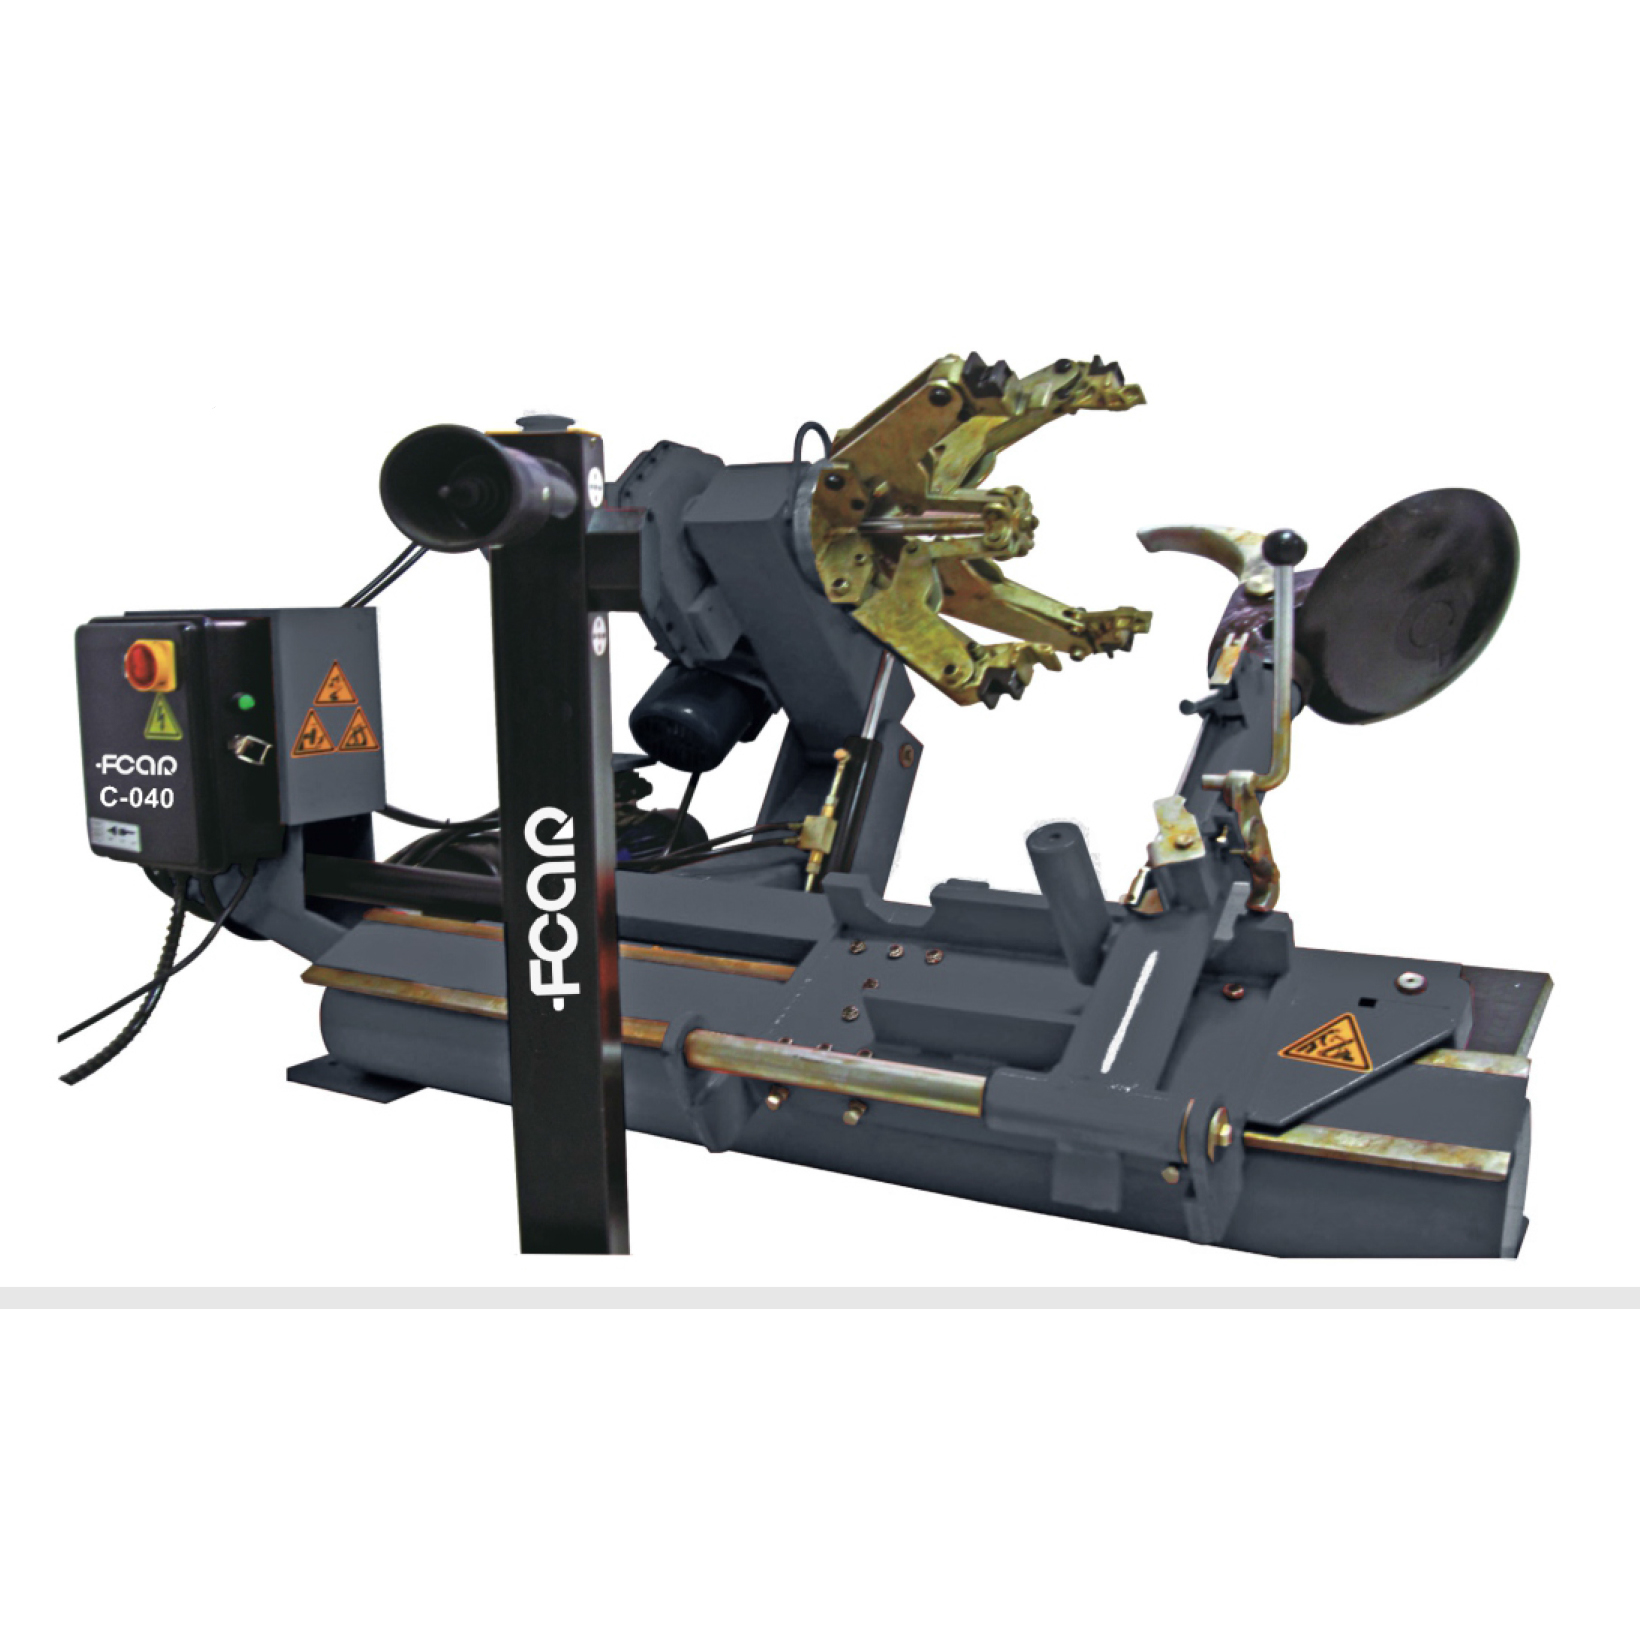 FCAR C-040 tire changer for truck, farm vehicle, car, industrial vehicle max 500kg wheel weight garage equipment and tools